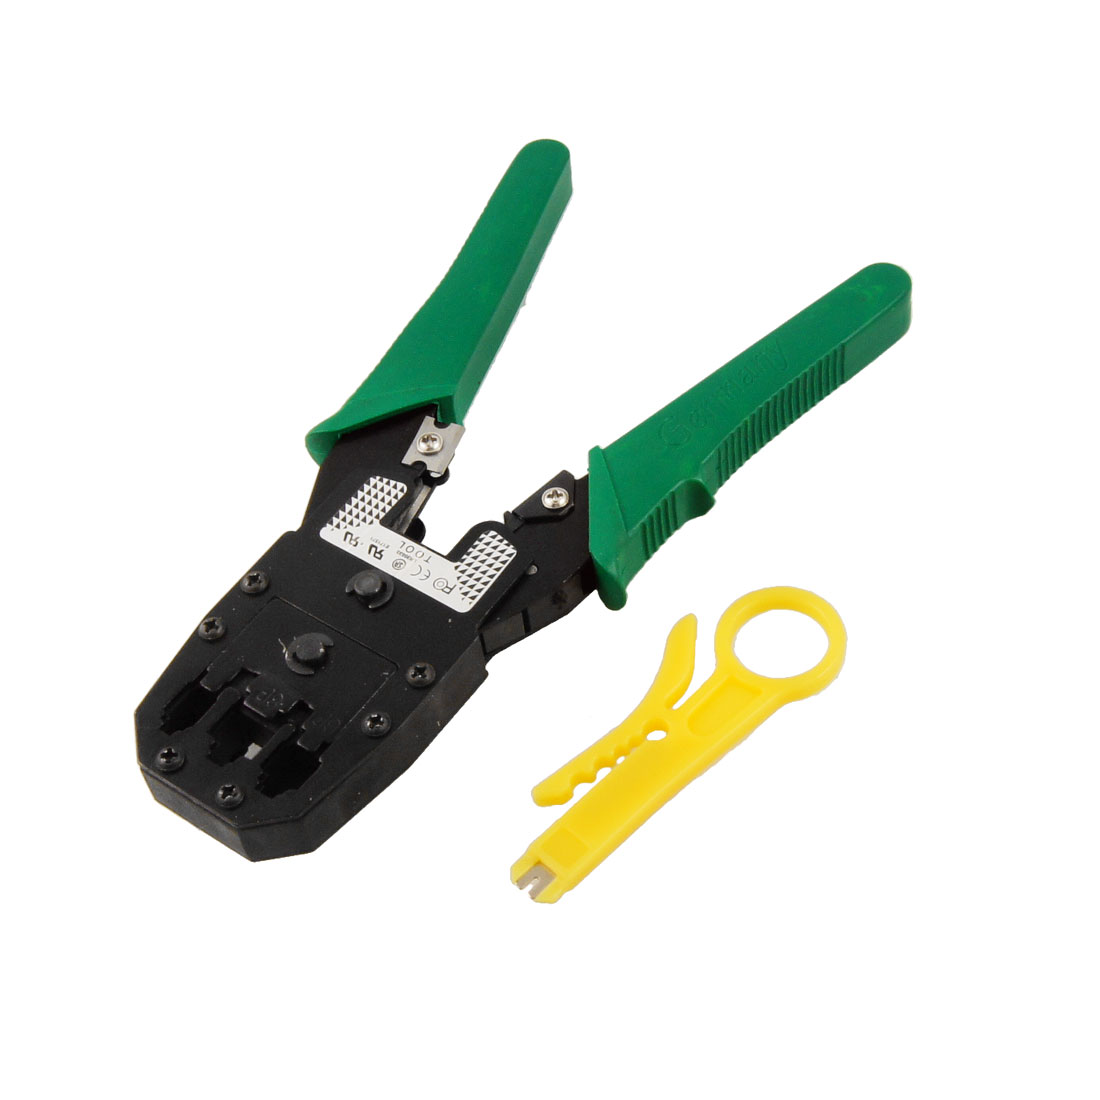 Green Handle 4P 6P 8P Connector Cat5e Cat6 Network Cable Crimping Plier 7.7""